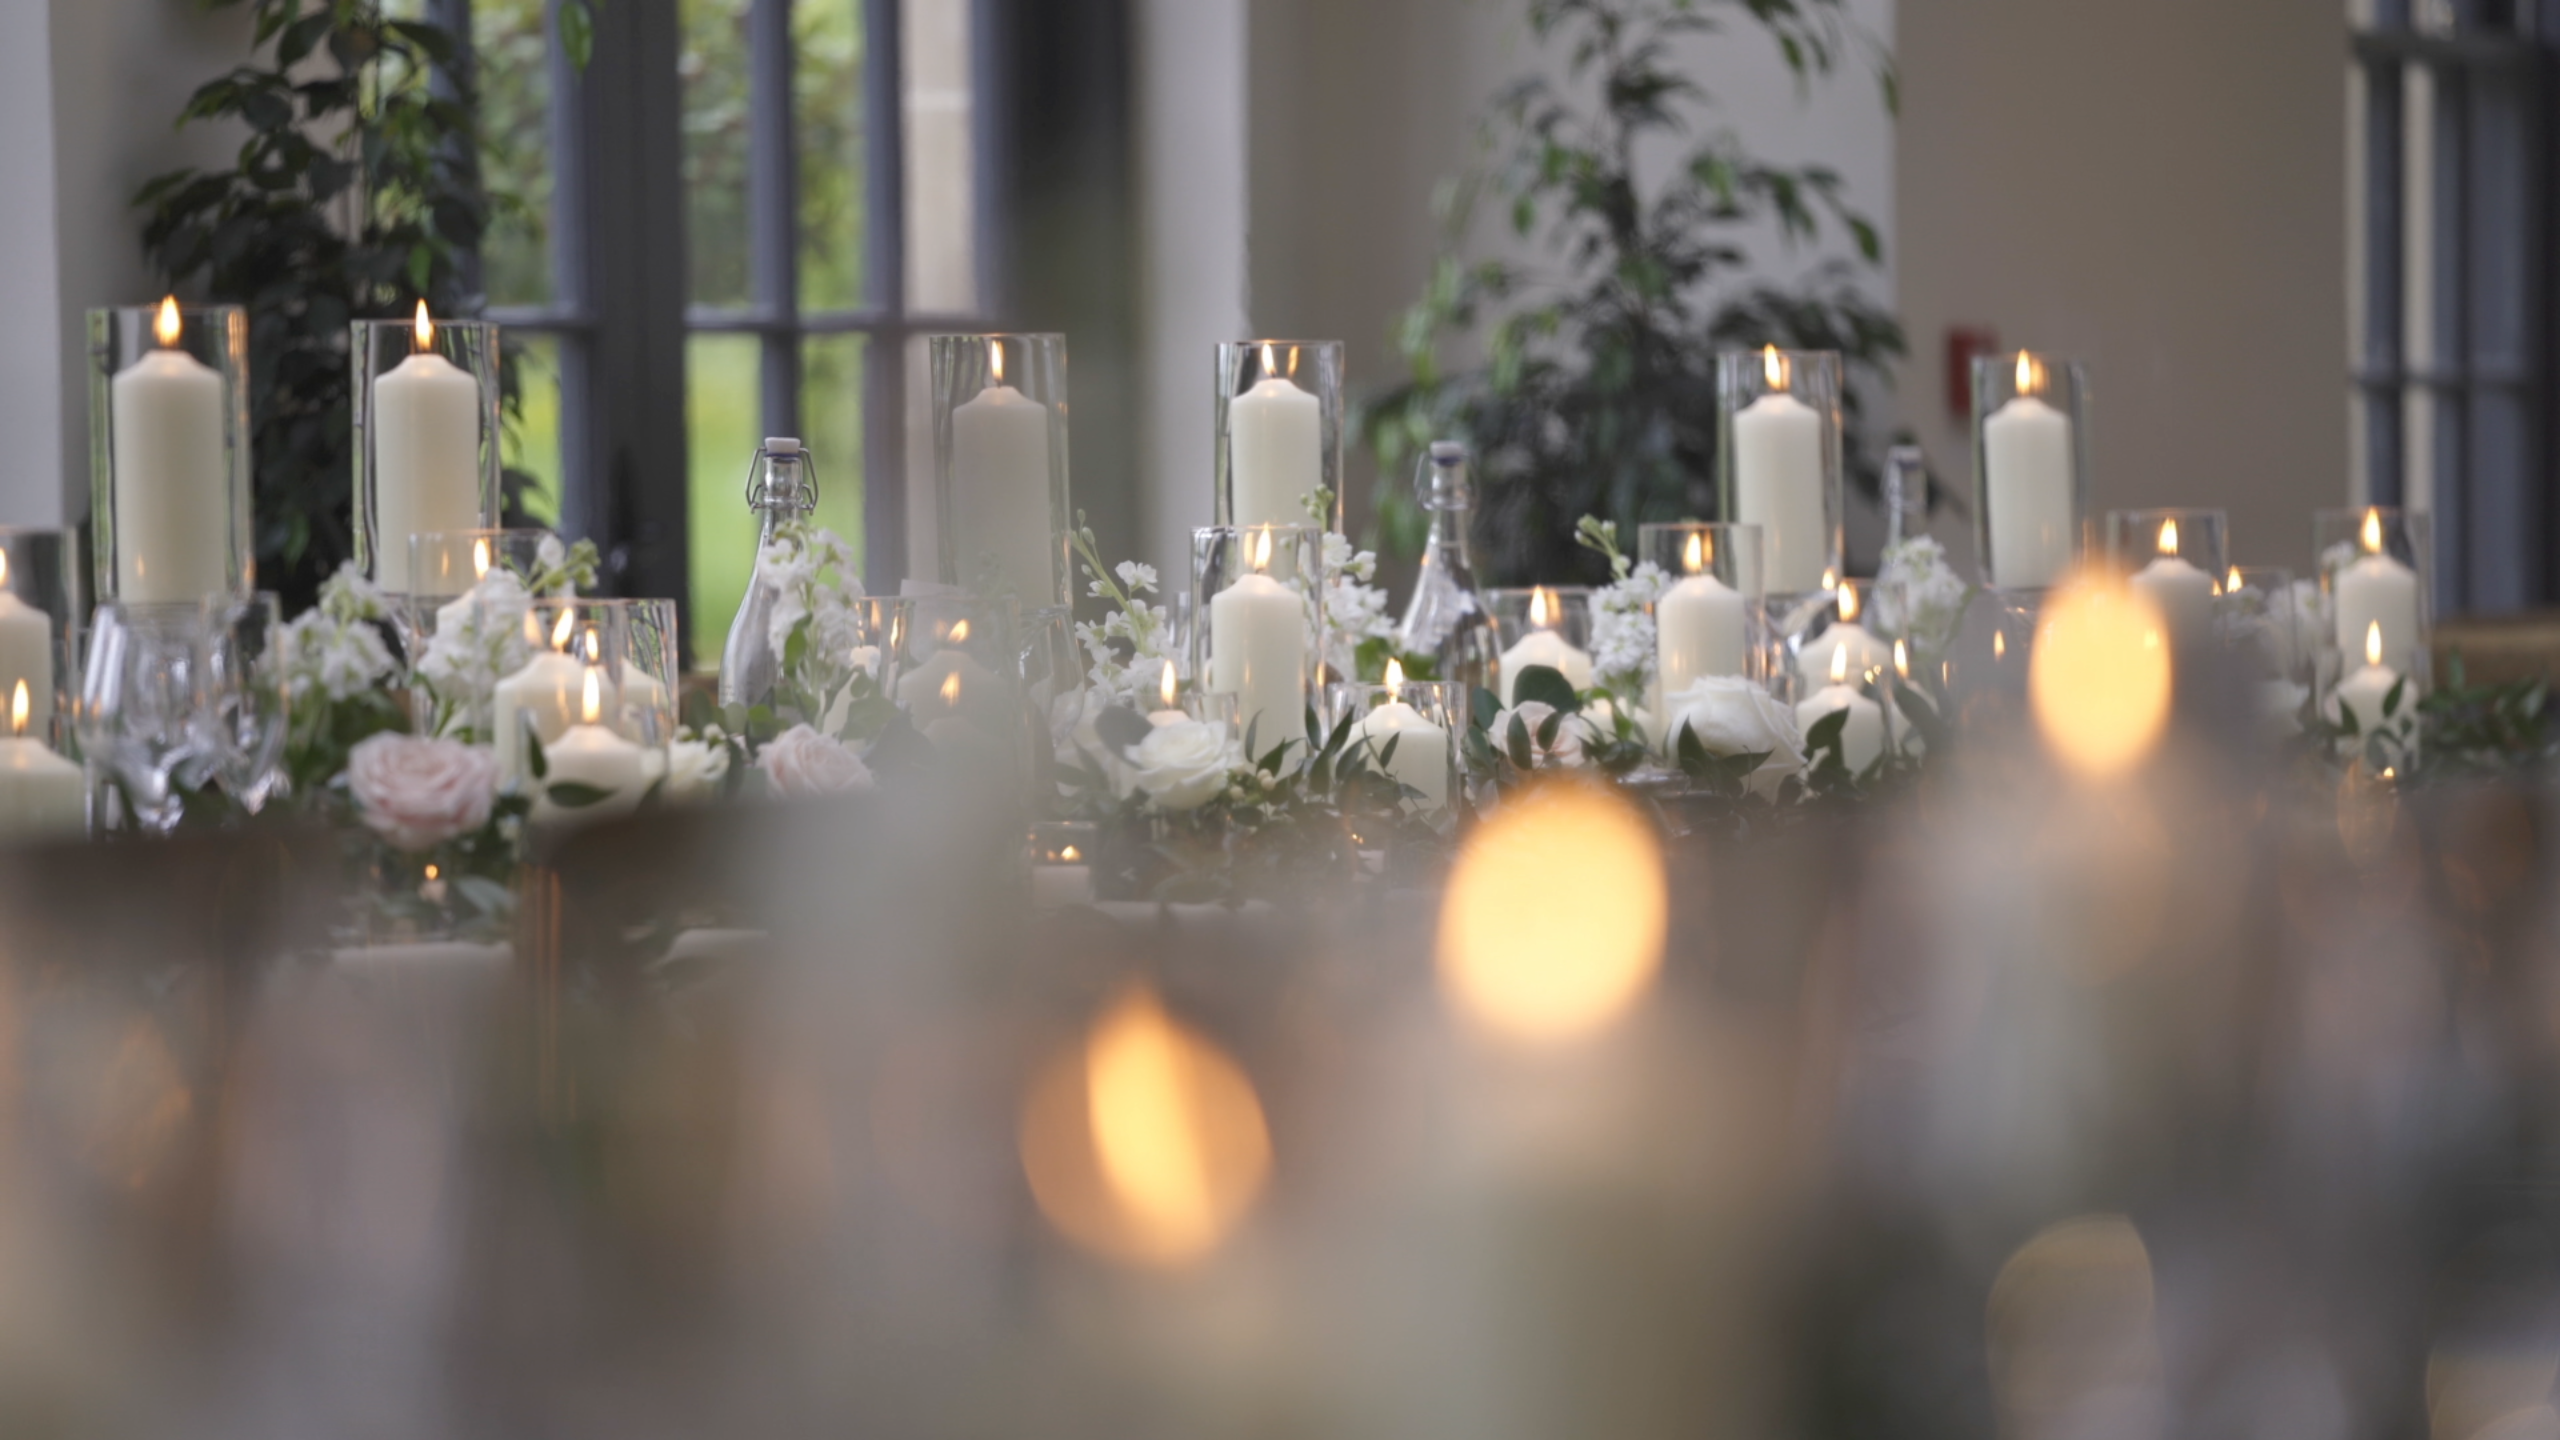 middleton lodge wedding breakfast decor